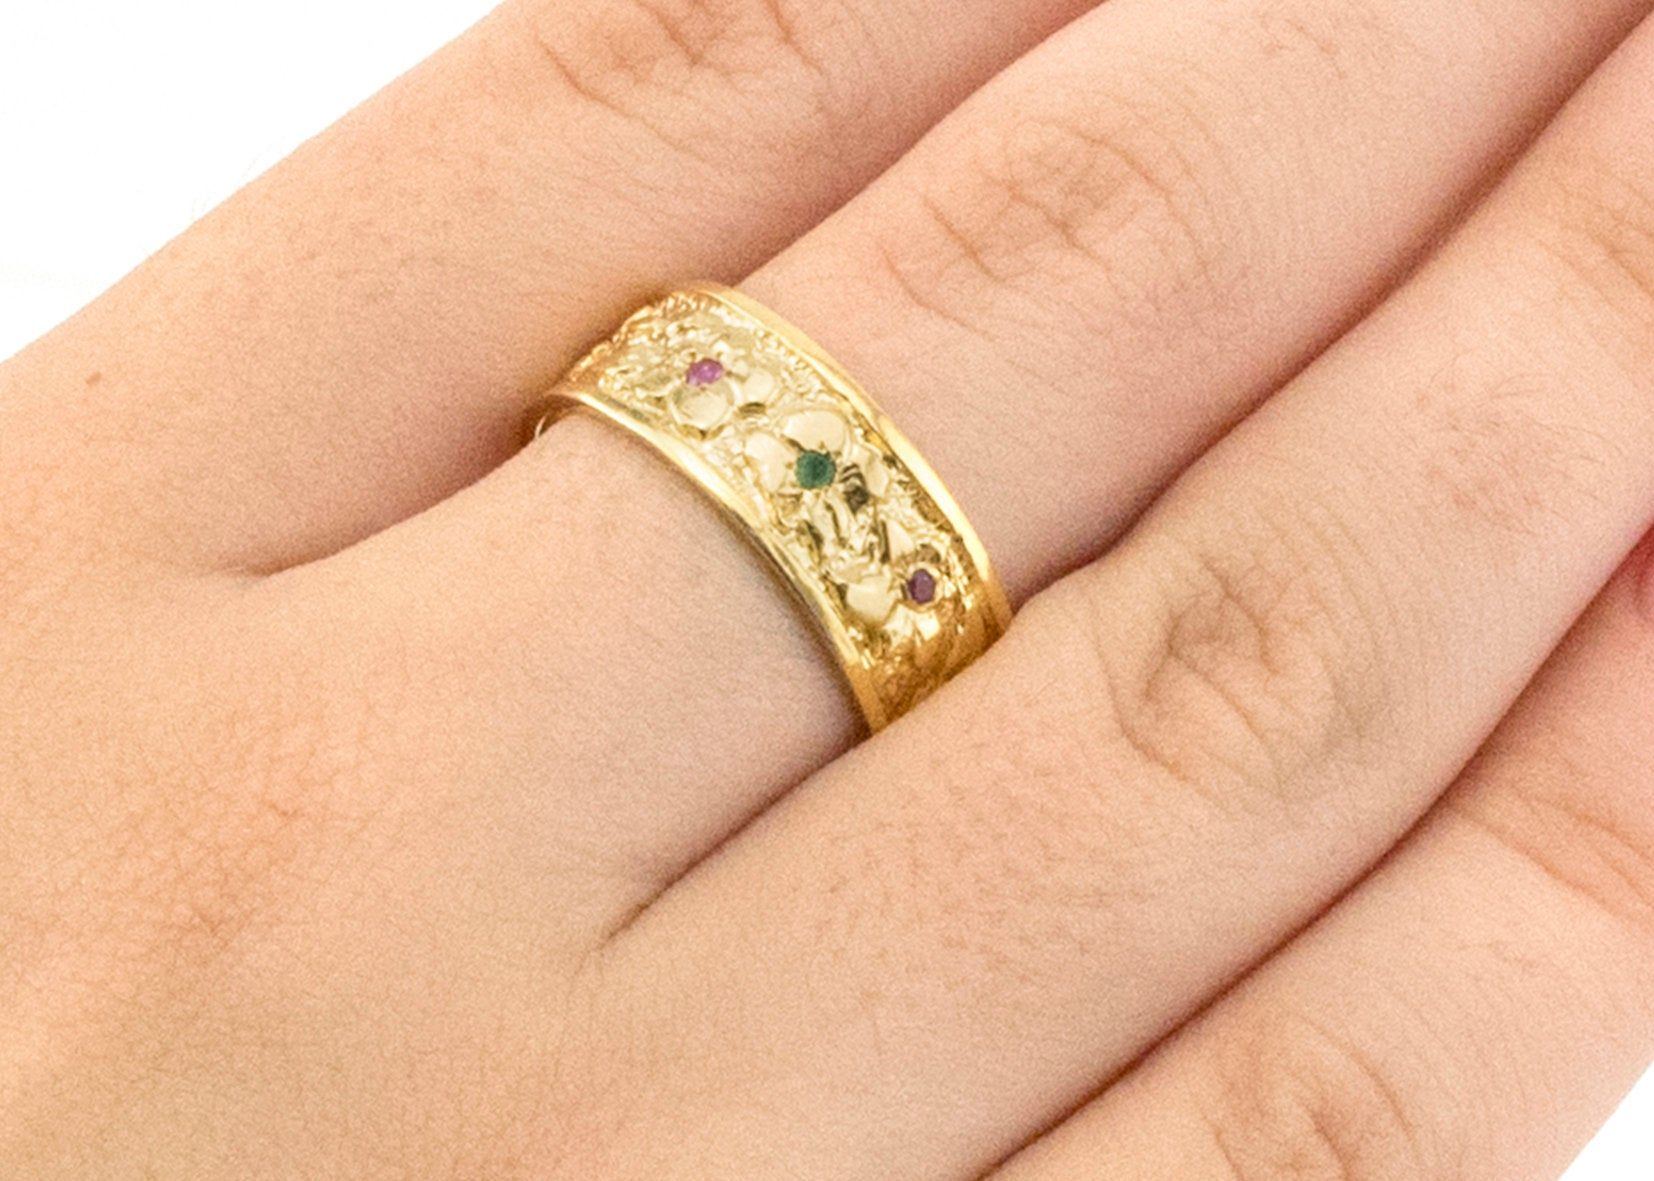 Vintage Style Women Band, 14k / 18k Gold Flowers and Leaves wedding Ring, Art-Deco Nature Insired leaf Ruby and Emerald Birthstone Ring.